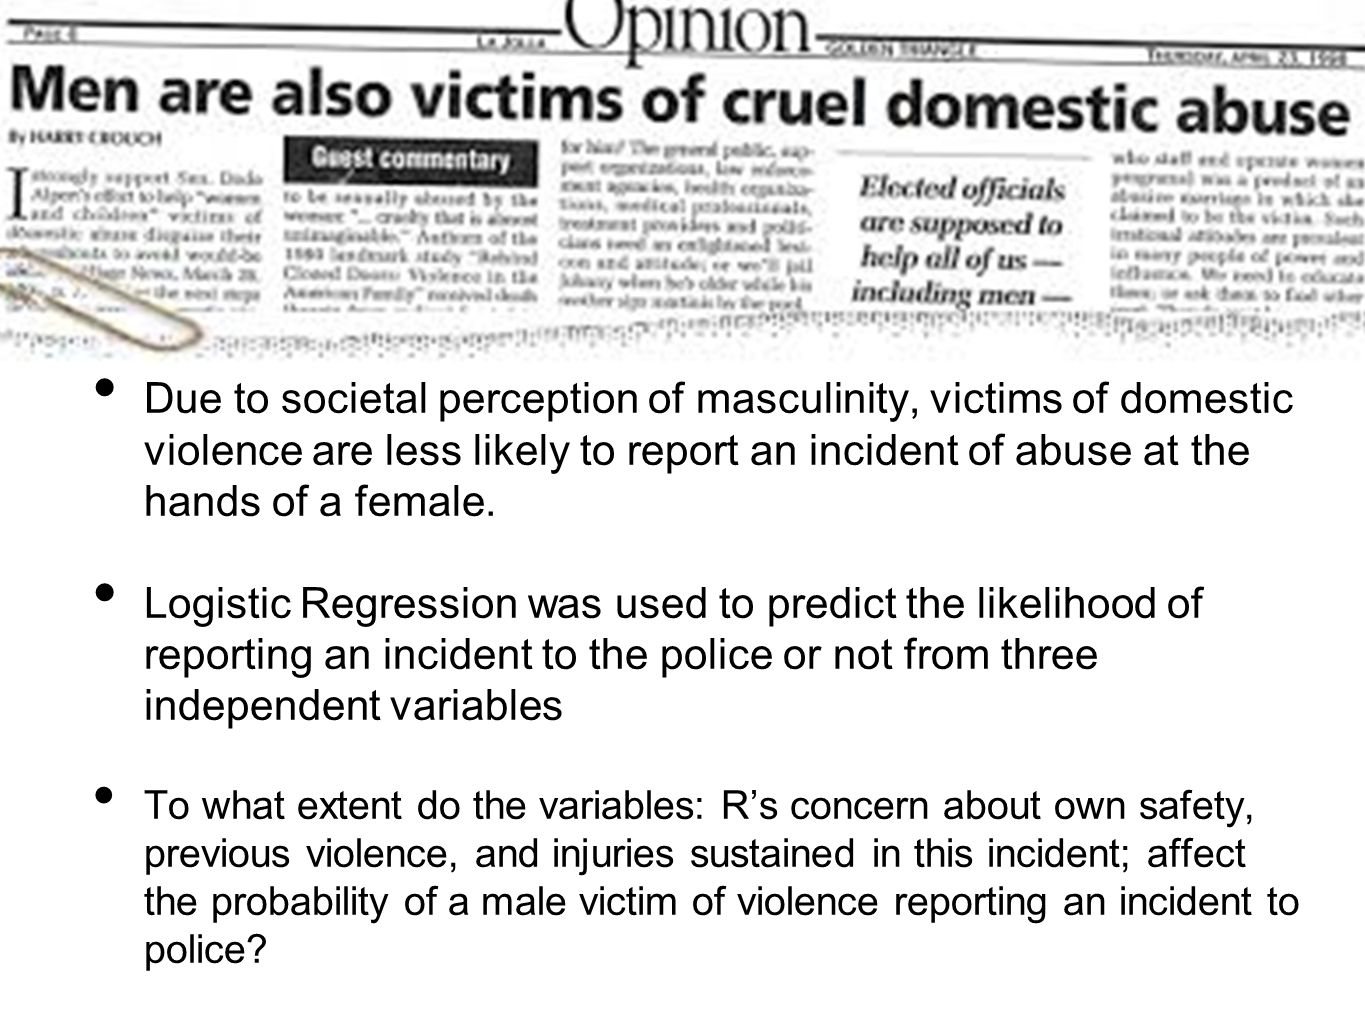 Due to societal perception of masculinity, victims of domestic violence are less likely to report an incident of abuse at the hands of a female. Logis